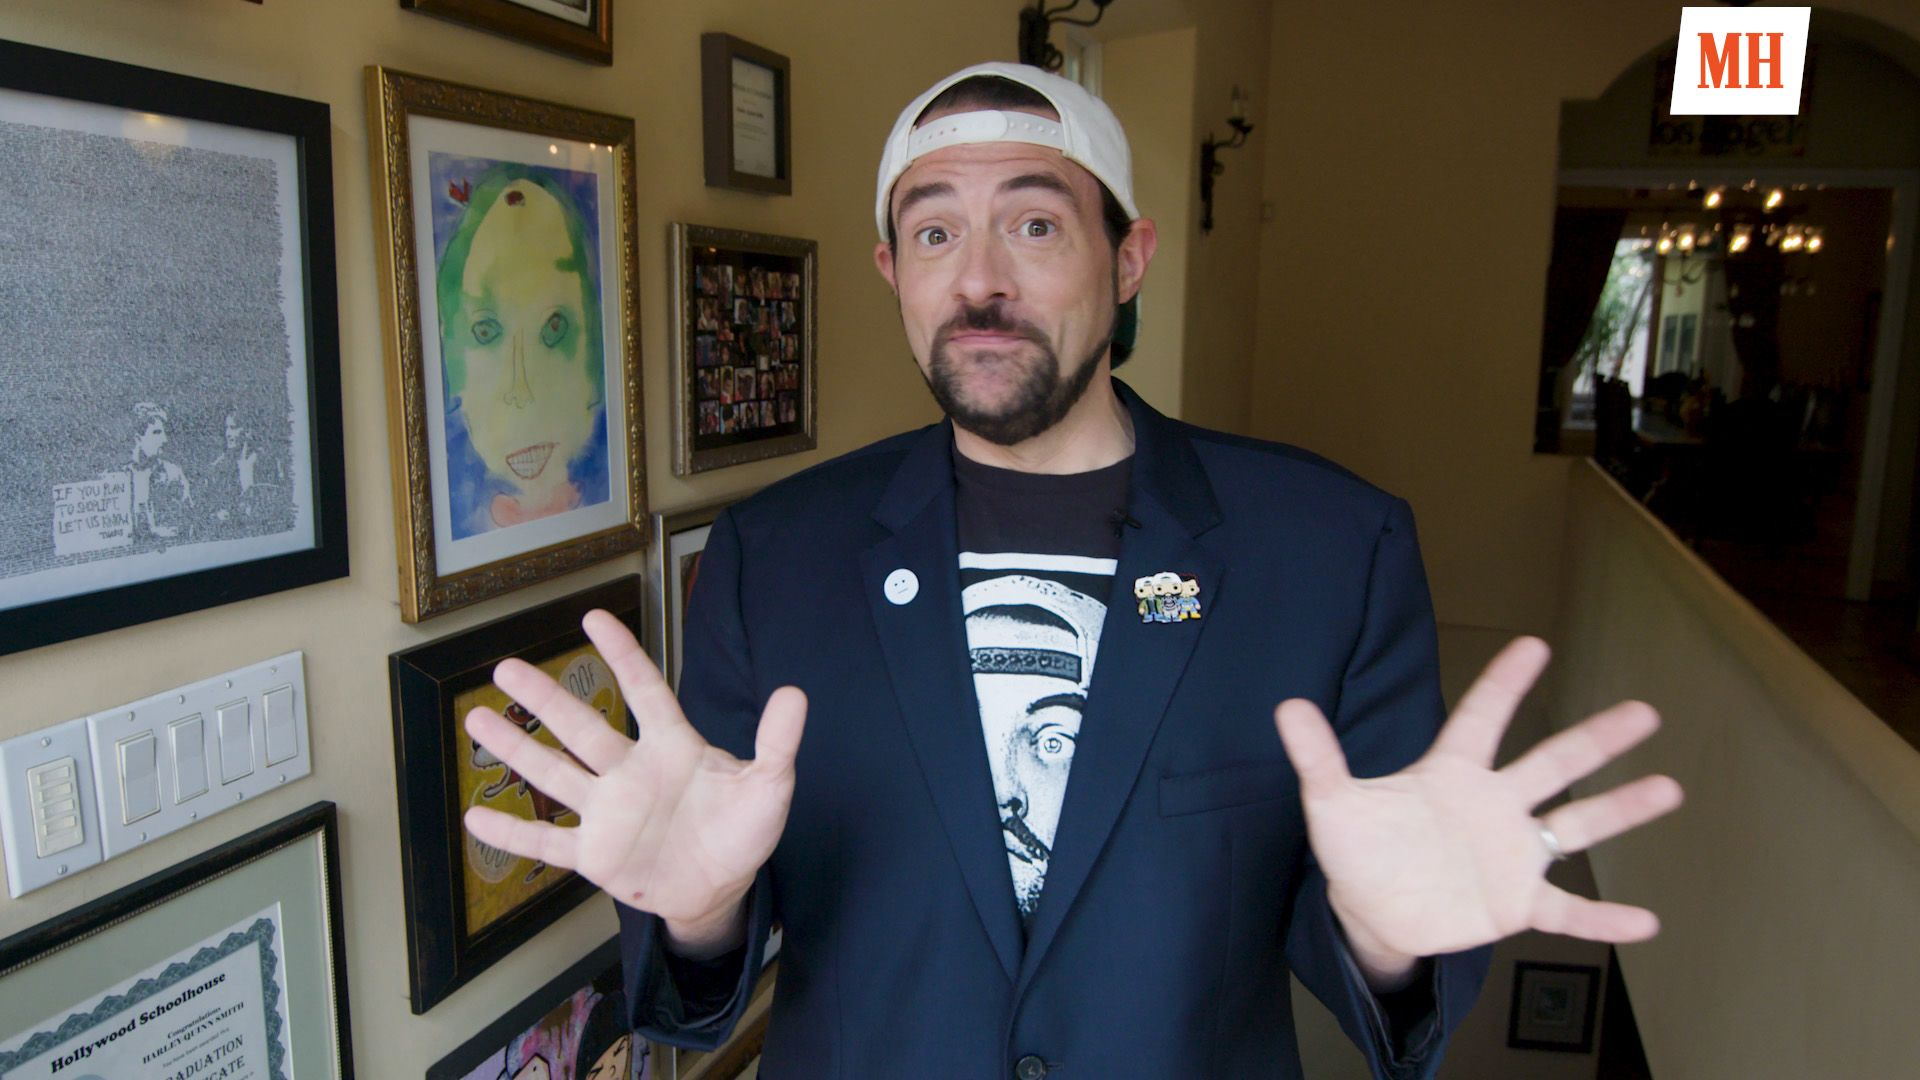 Kevin Smith Reveals How He Lost 50 Pounds After a Heart Attack And Is Staying Lean